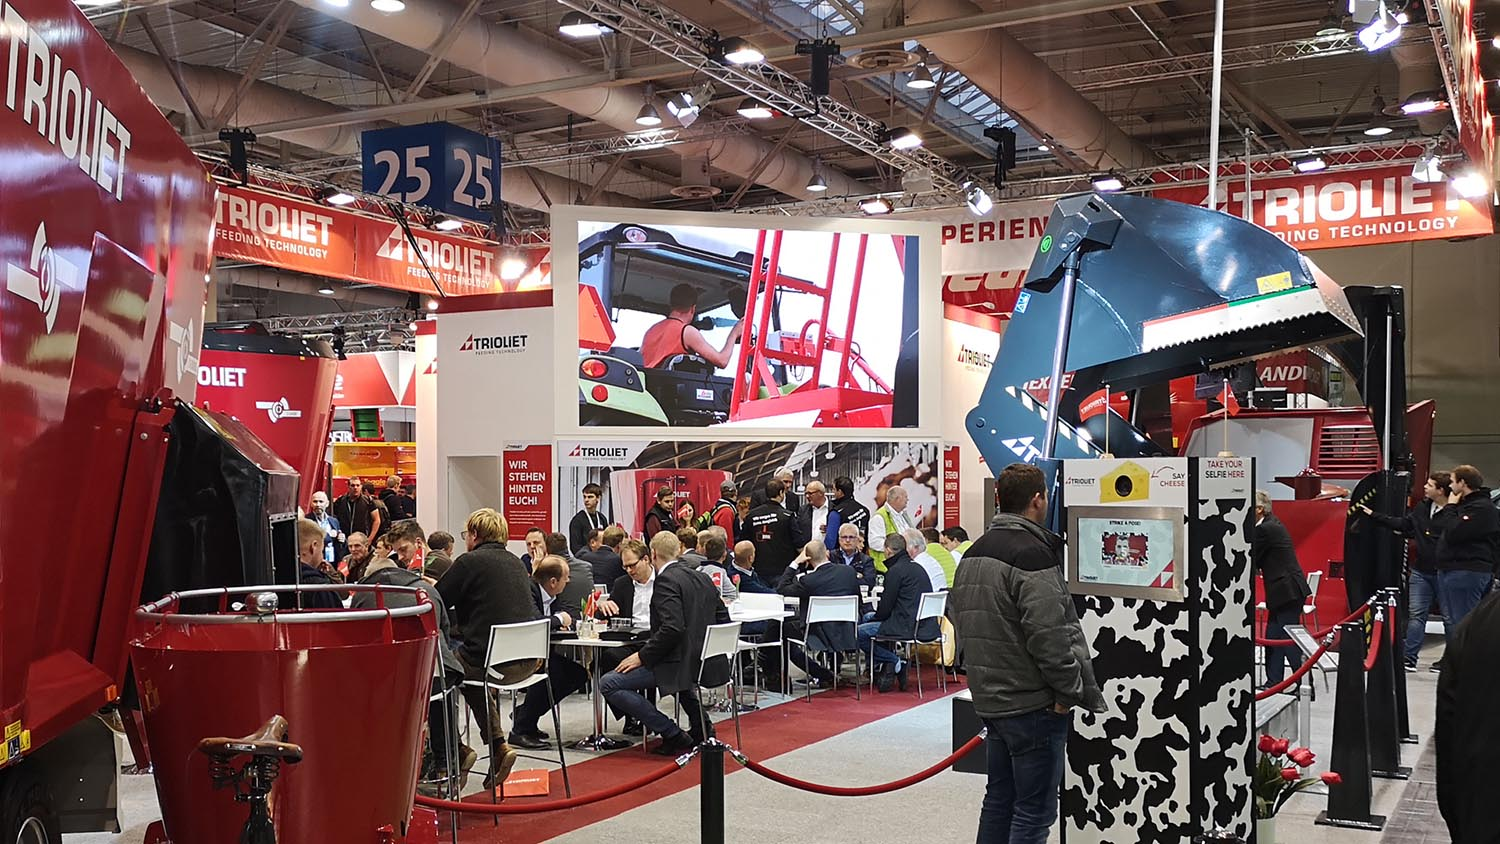 led scherm in stand eurotier hannover messe - agritechnica